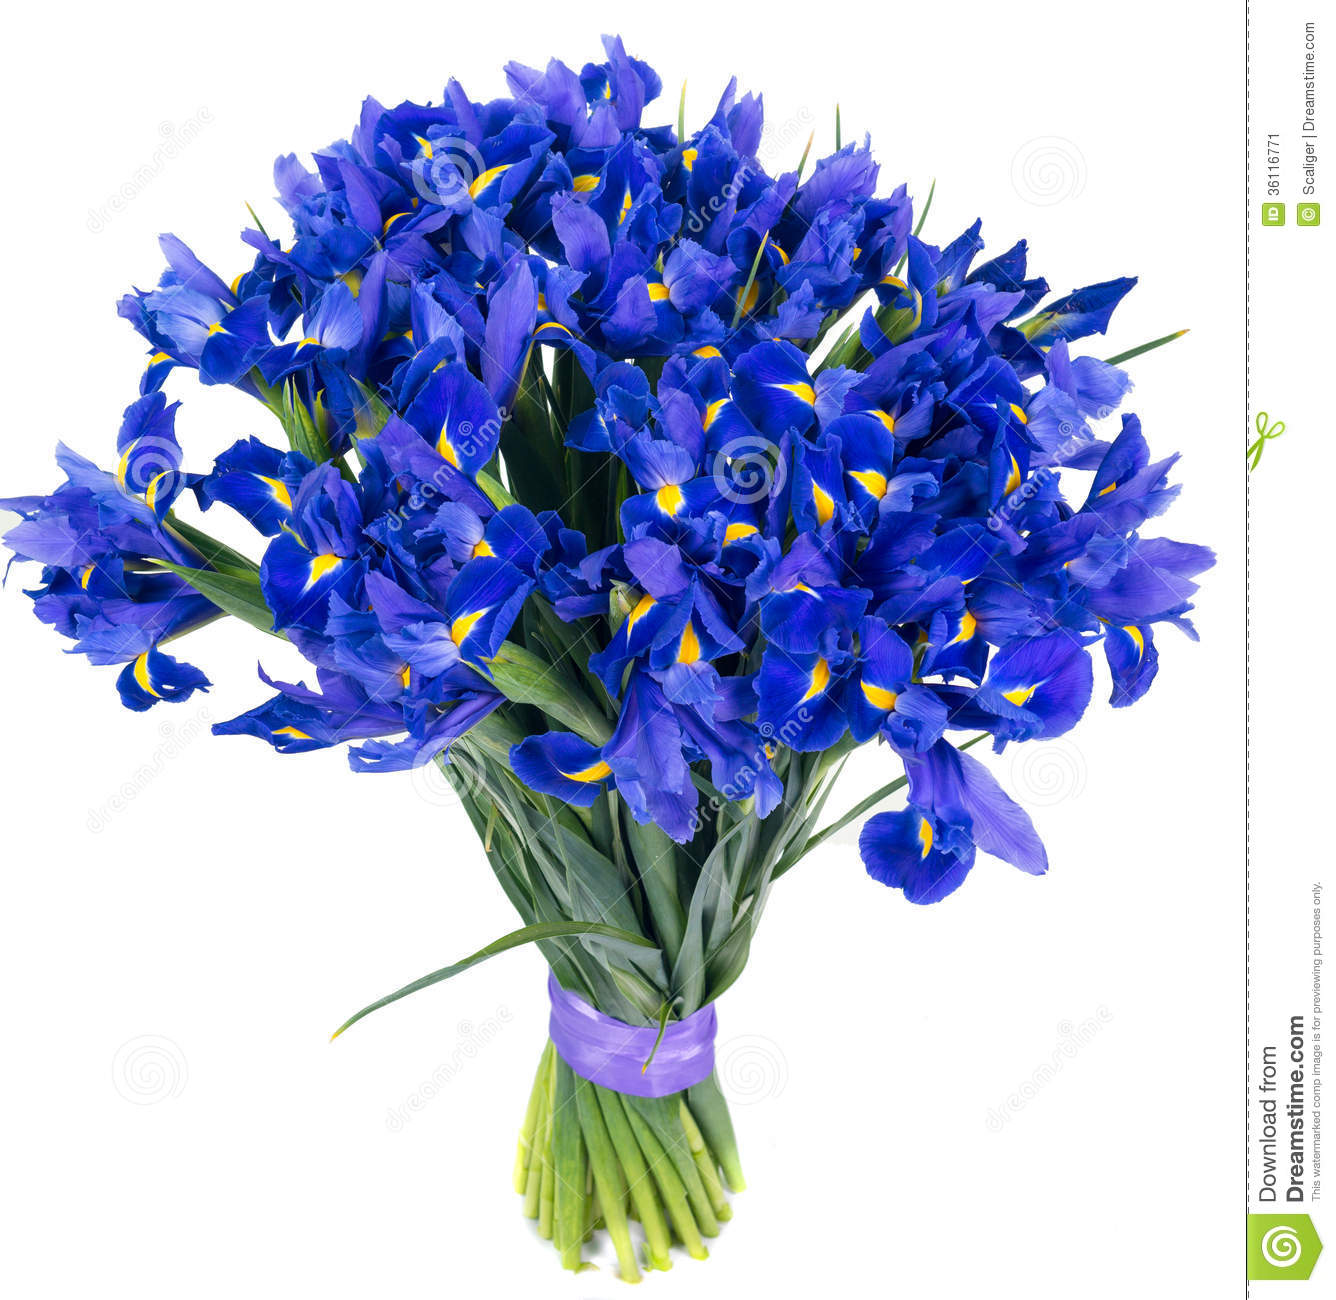 Bouquet Of Blue Irises Stock Image - Image: 36116771